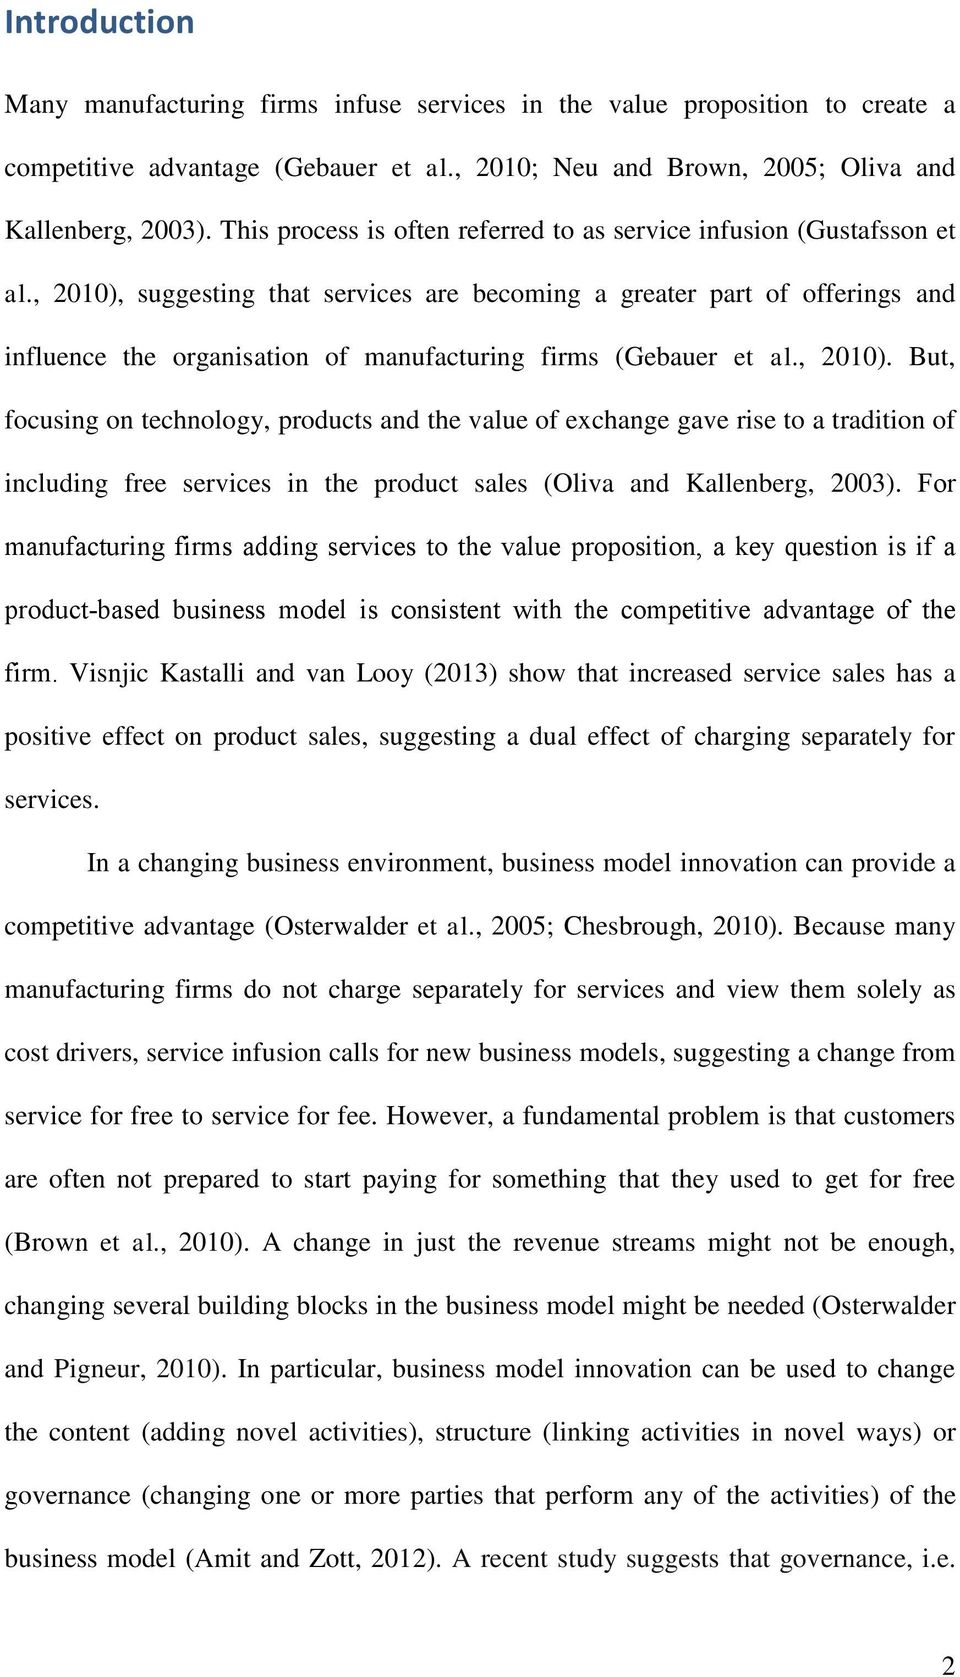 , 2010), suggesting that services are becoming a greater part of offerings and influence the organisation of manufacturing firms (Gebauer et al., 2010). But, focusing on technology, products and the value of exchange gave rise to a tradition of including free services in the product sales (Oliva and Kallenberg, 2003).